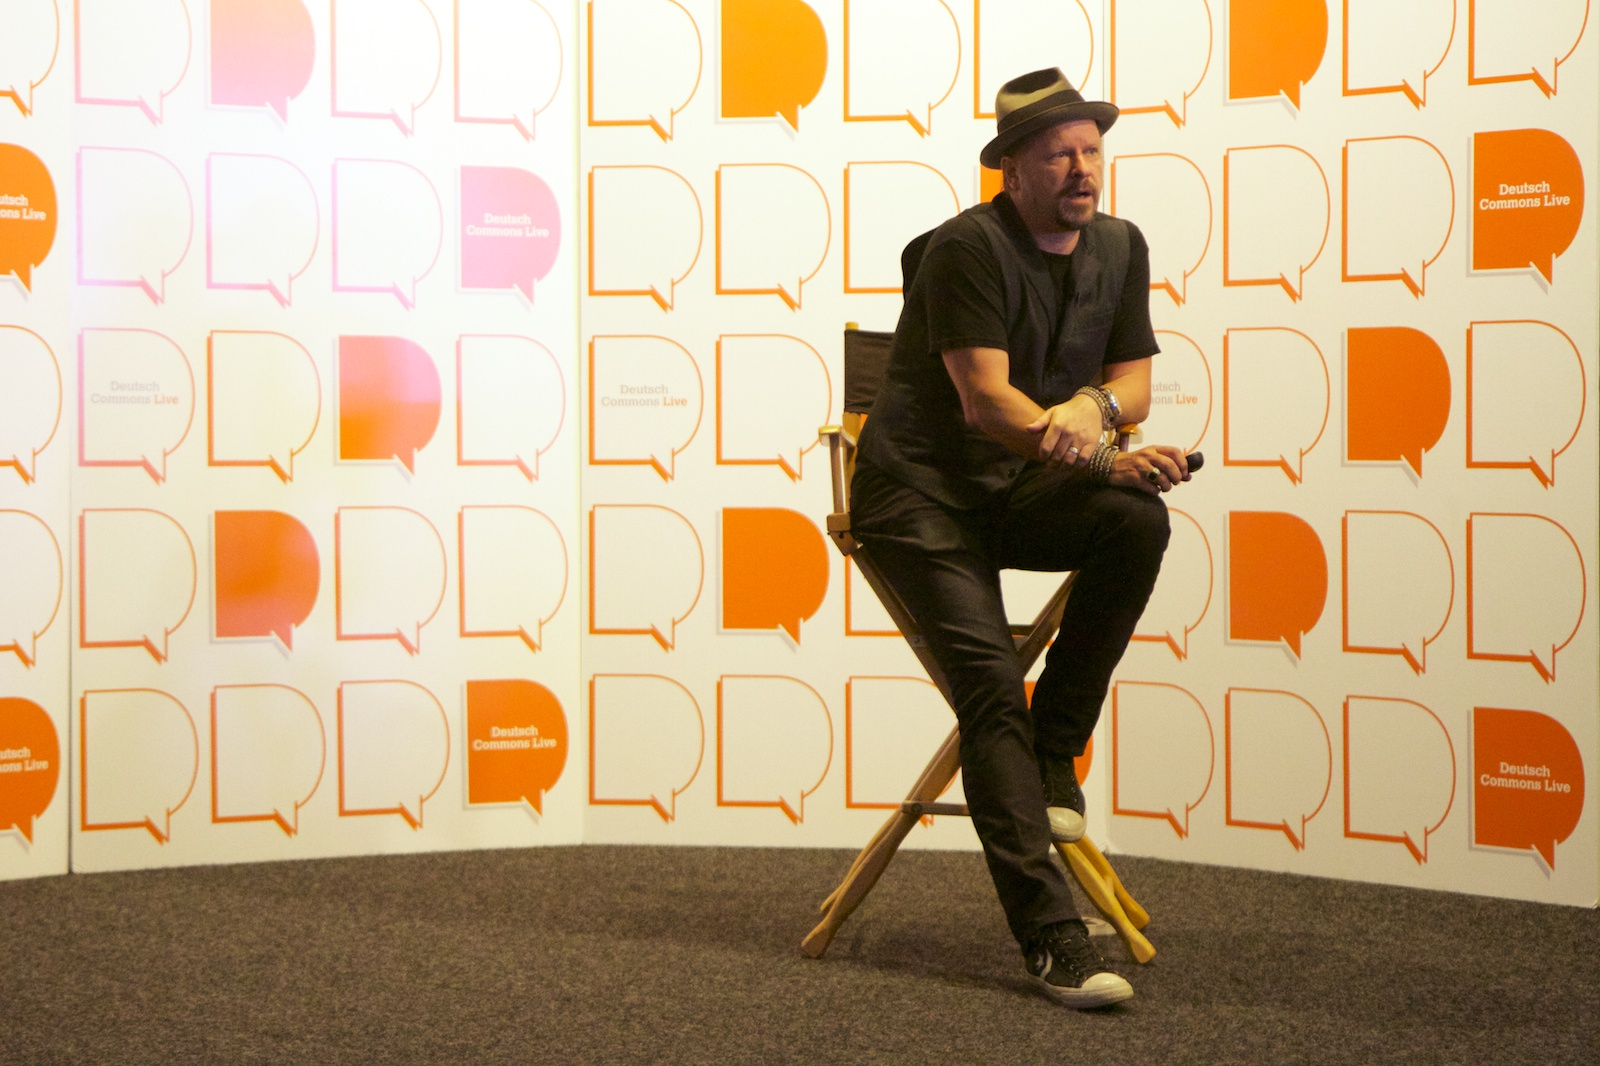 Danny Clinch at Deutsch Commons Live